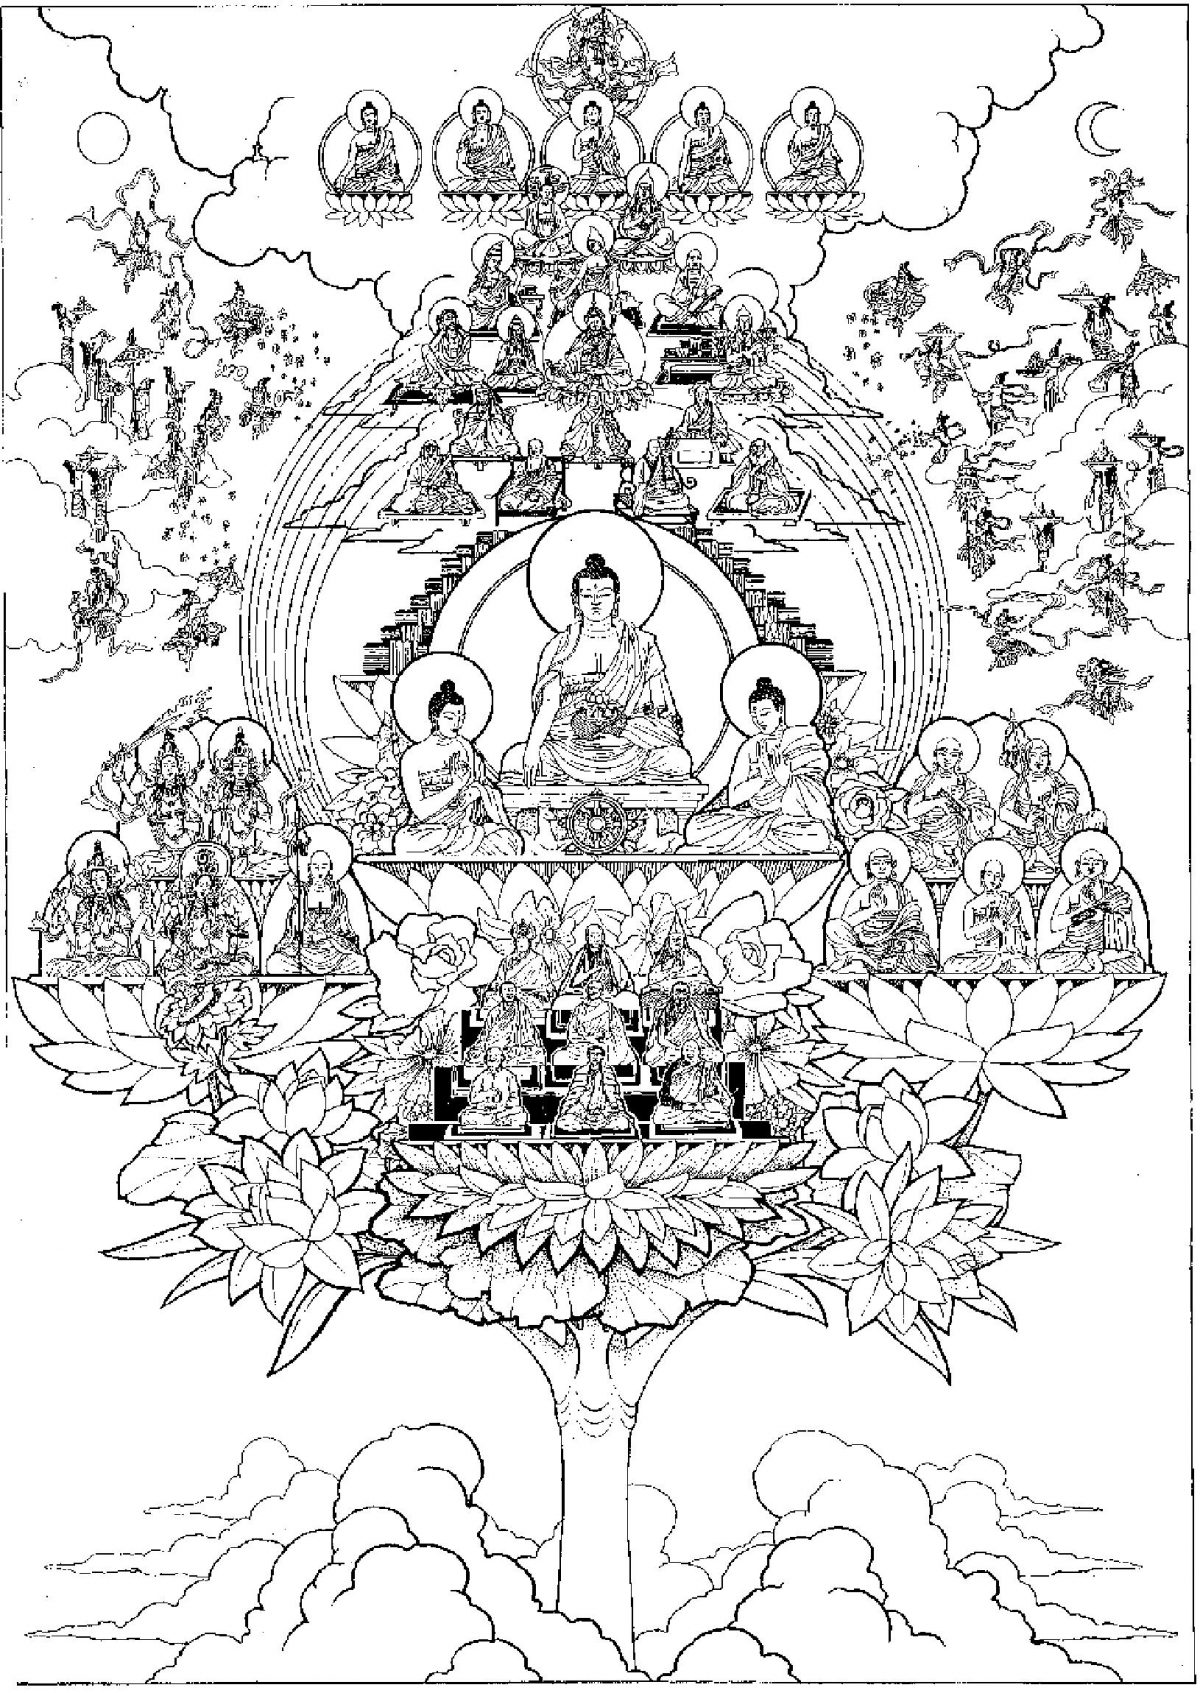 Meditation and Buddhism in the Summer